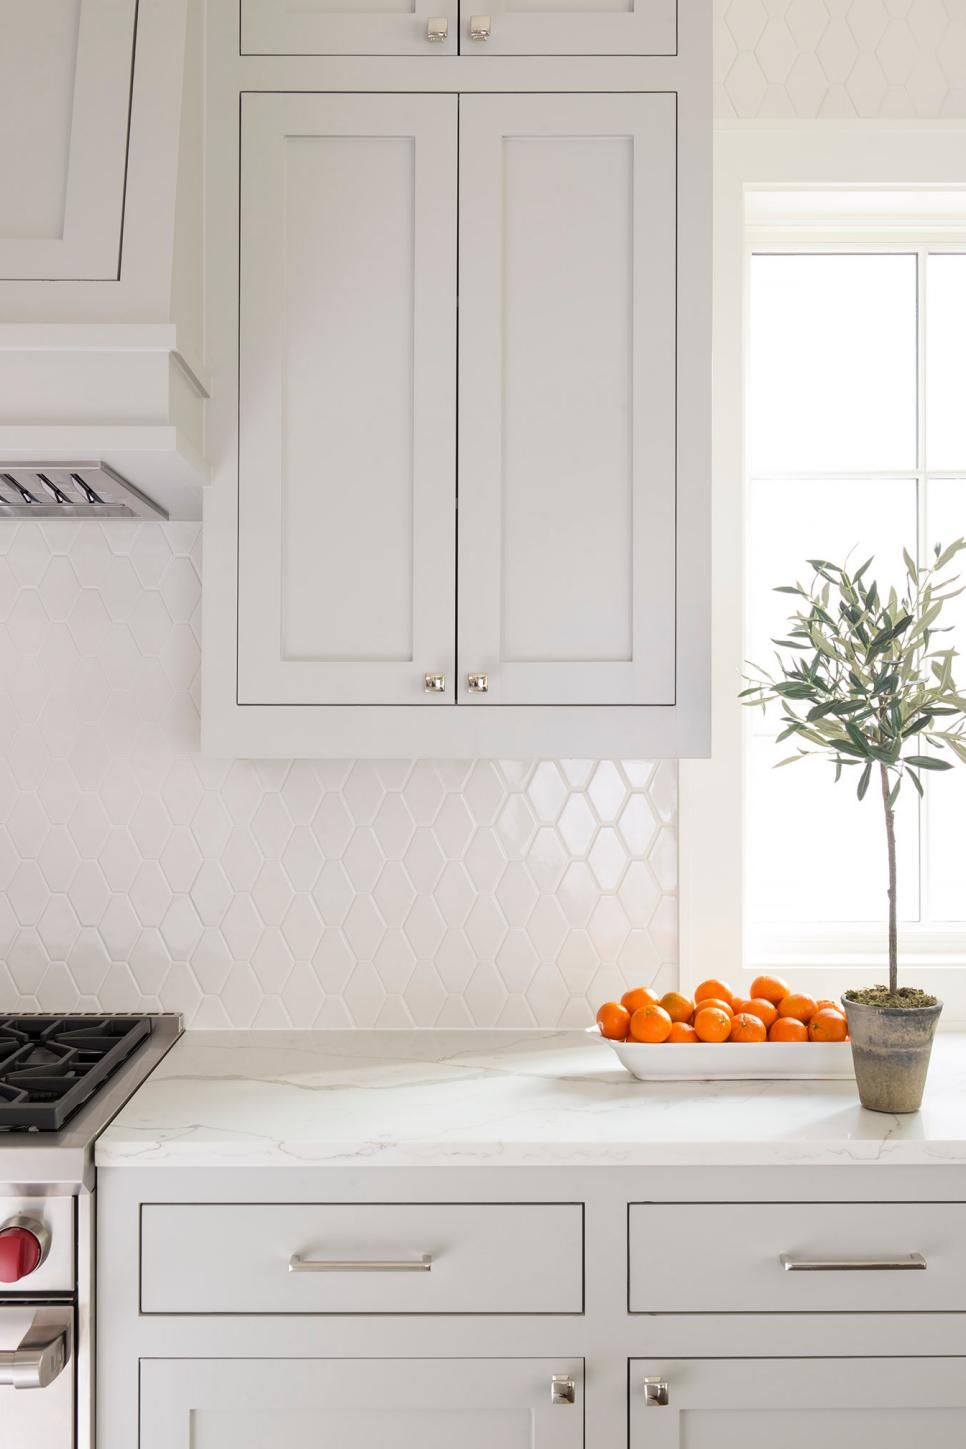 The Diamond Shaped Backsplash Adds An Element Of Subtle Modern